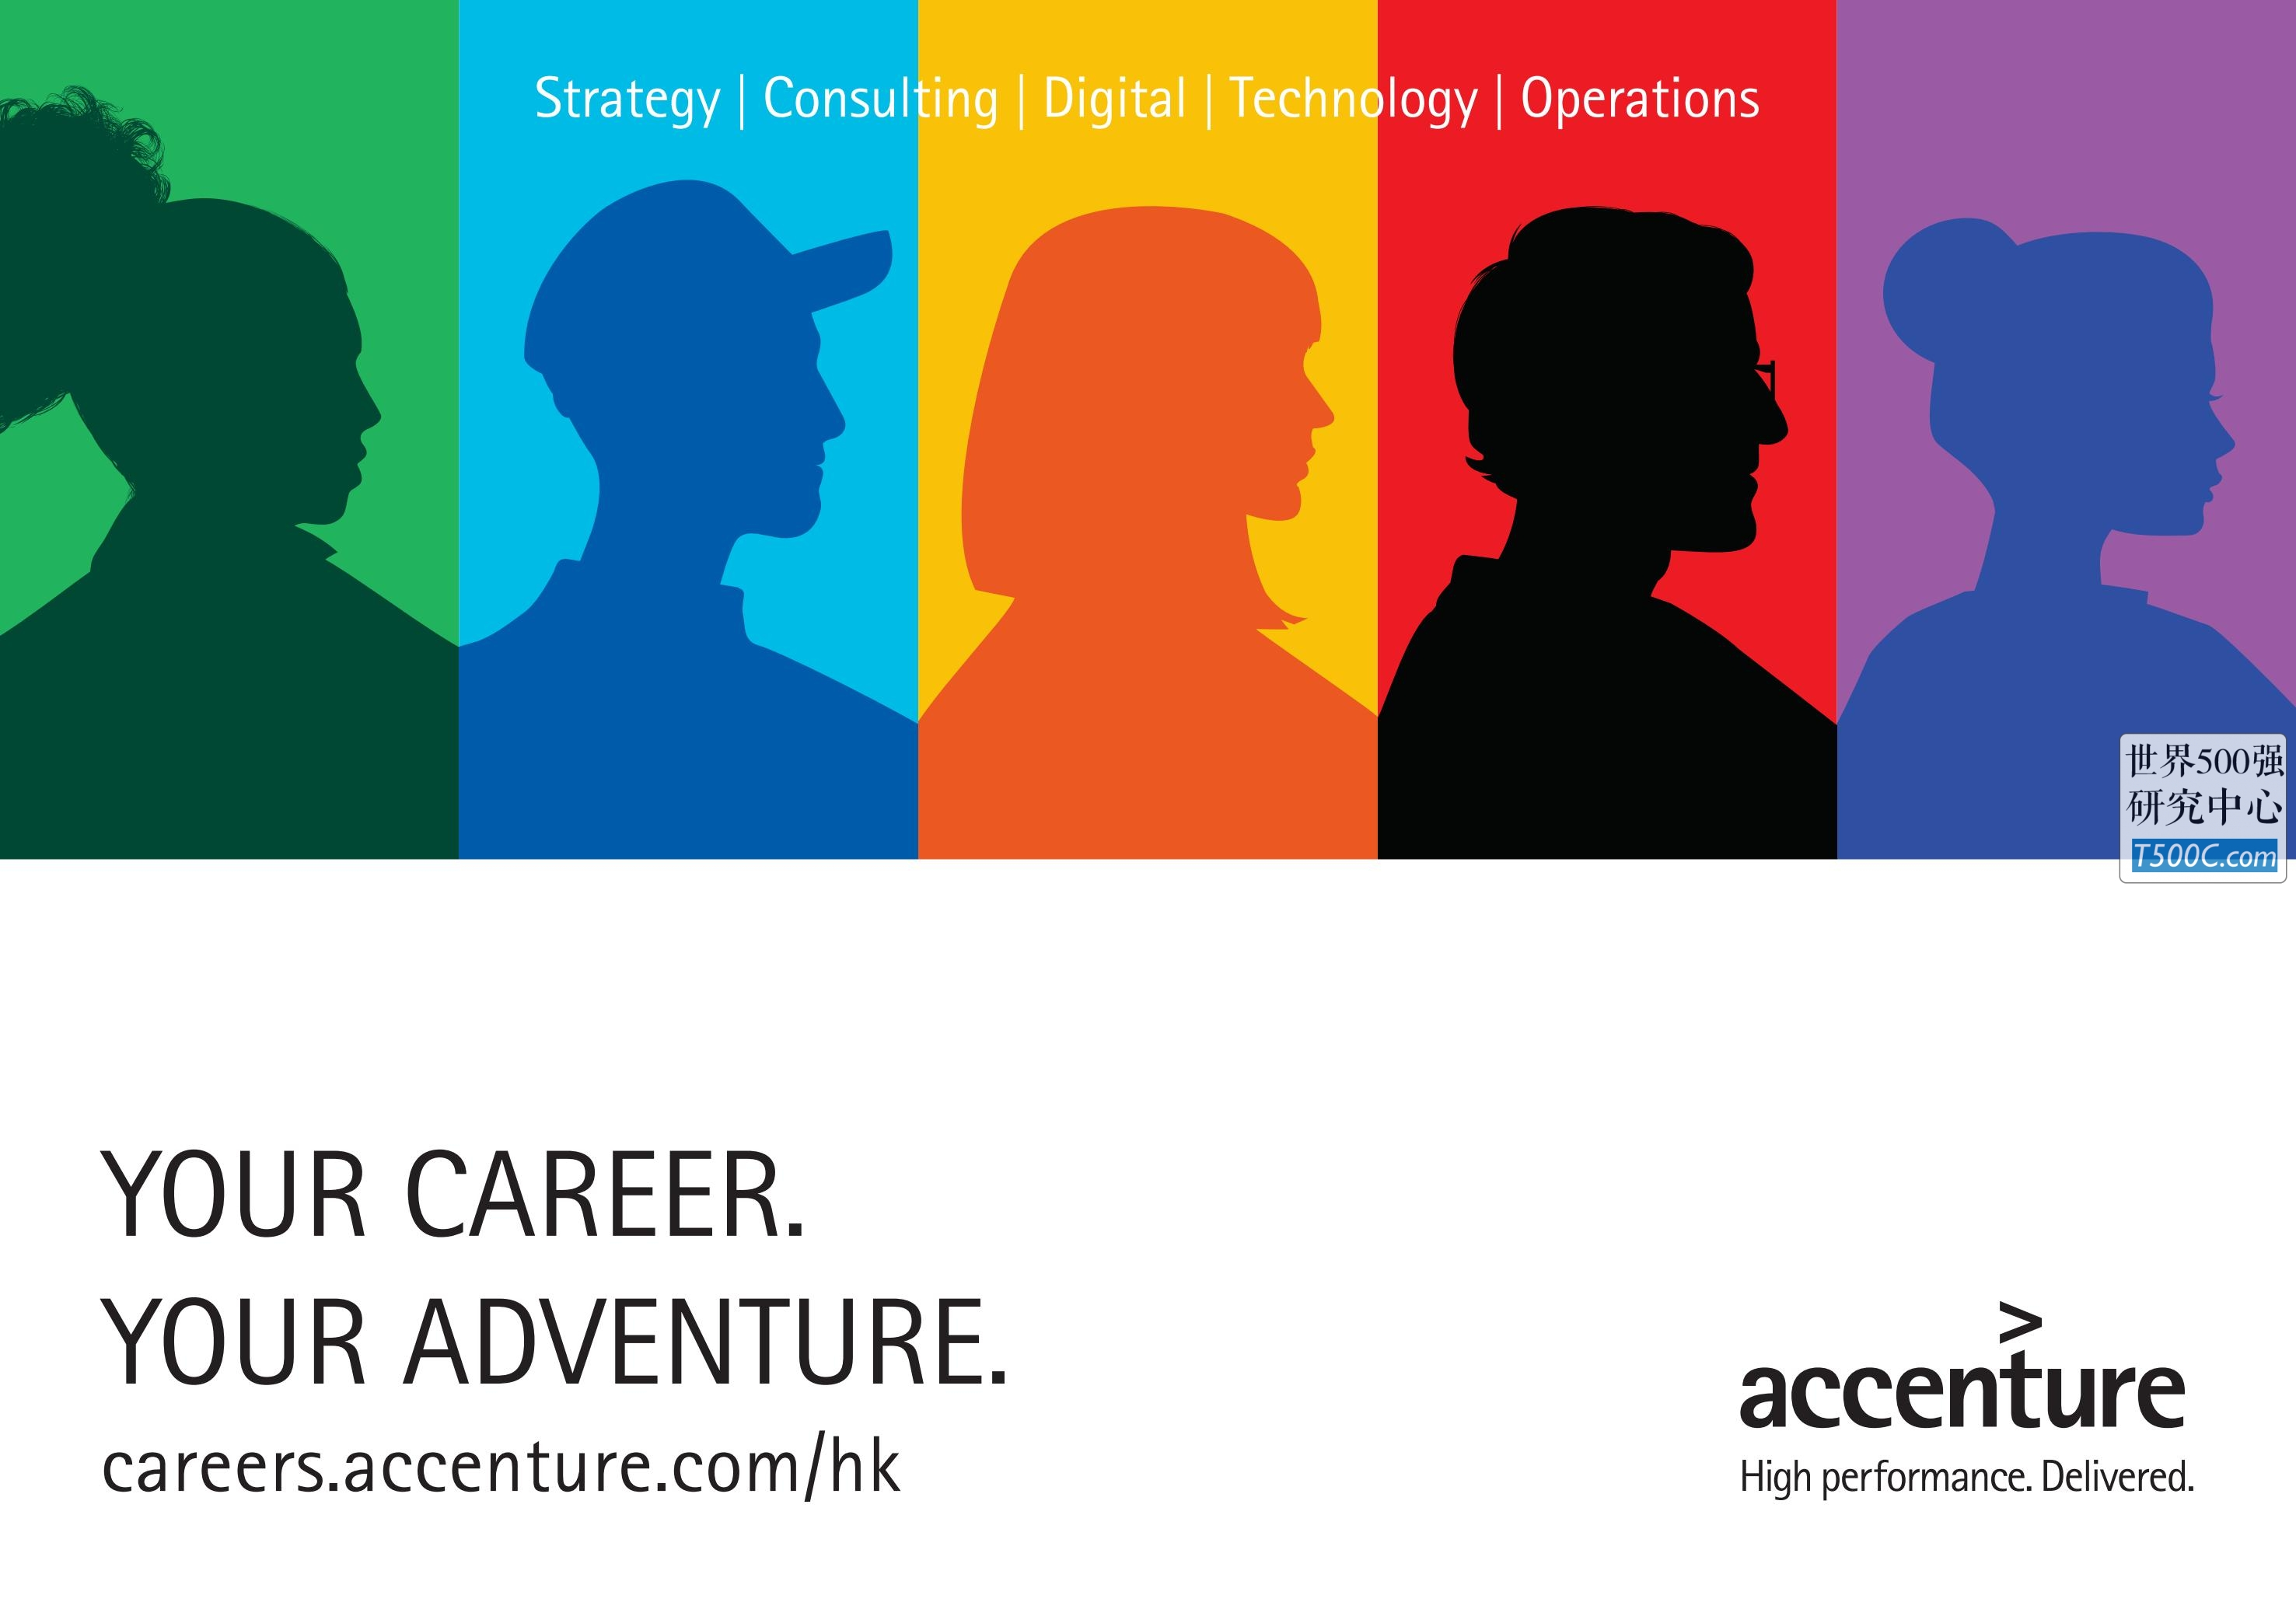 埃森哲Accenture_人力资源宣传册Brochure_T500C.com_HK Career brochure.pdf